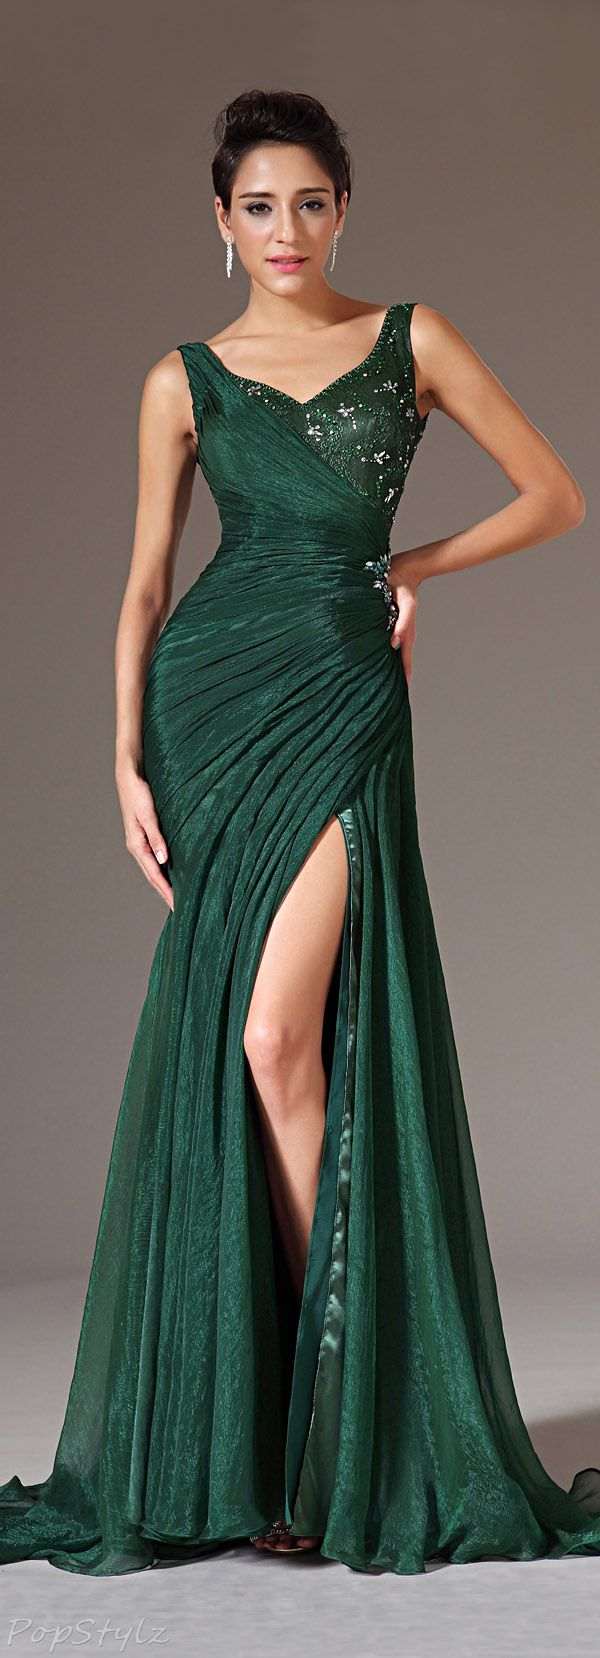 17 Best ideas about Chiffon Evening Dresses on Pinterest | Beaded ...